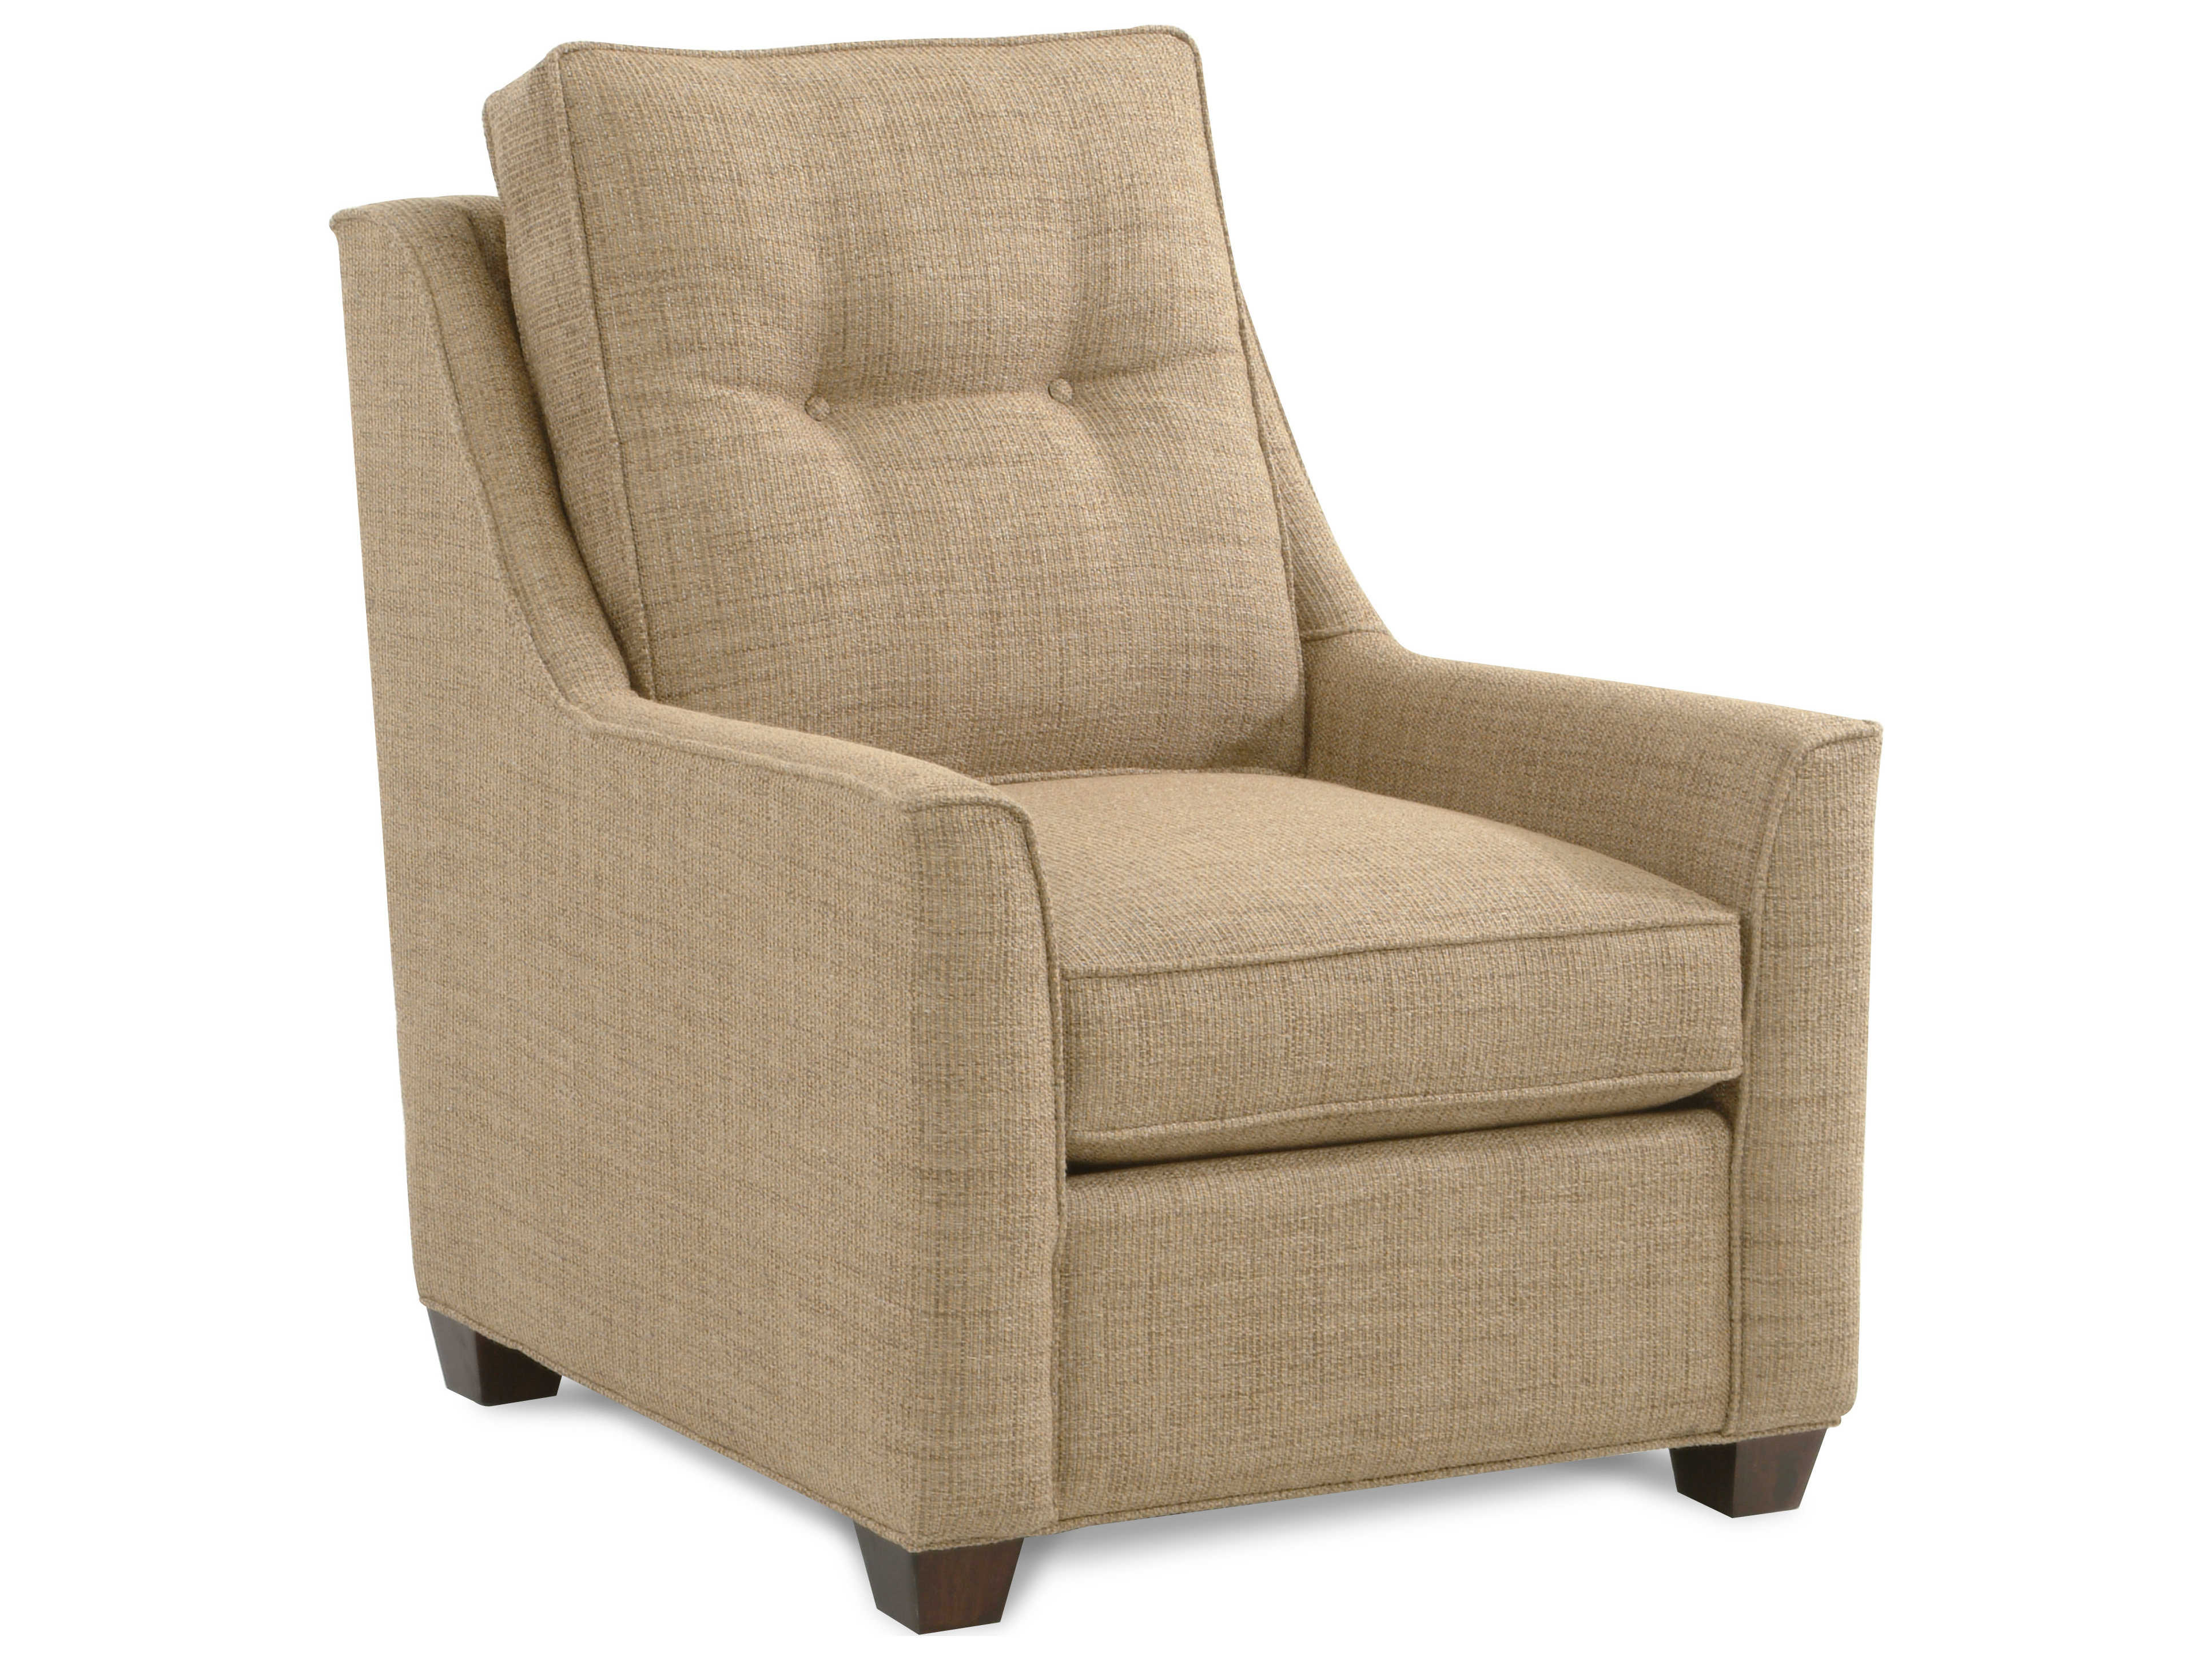 Super Braxton Culler Cambridge Accent Chair Pabps2019 Chair Design Images Pabps2019Com